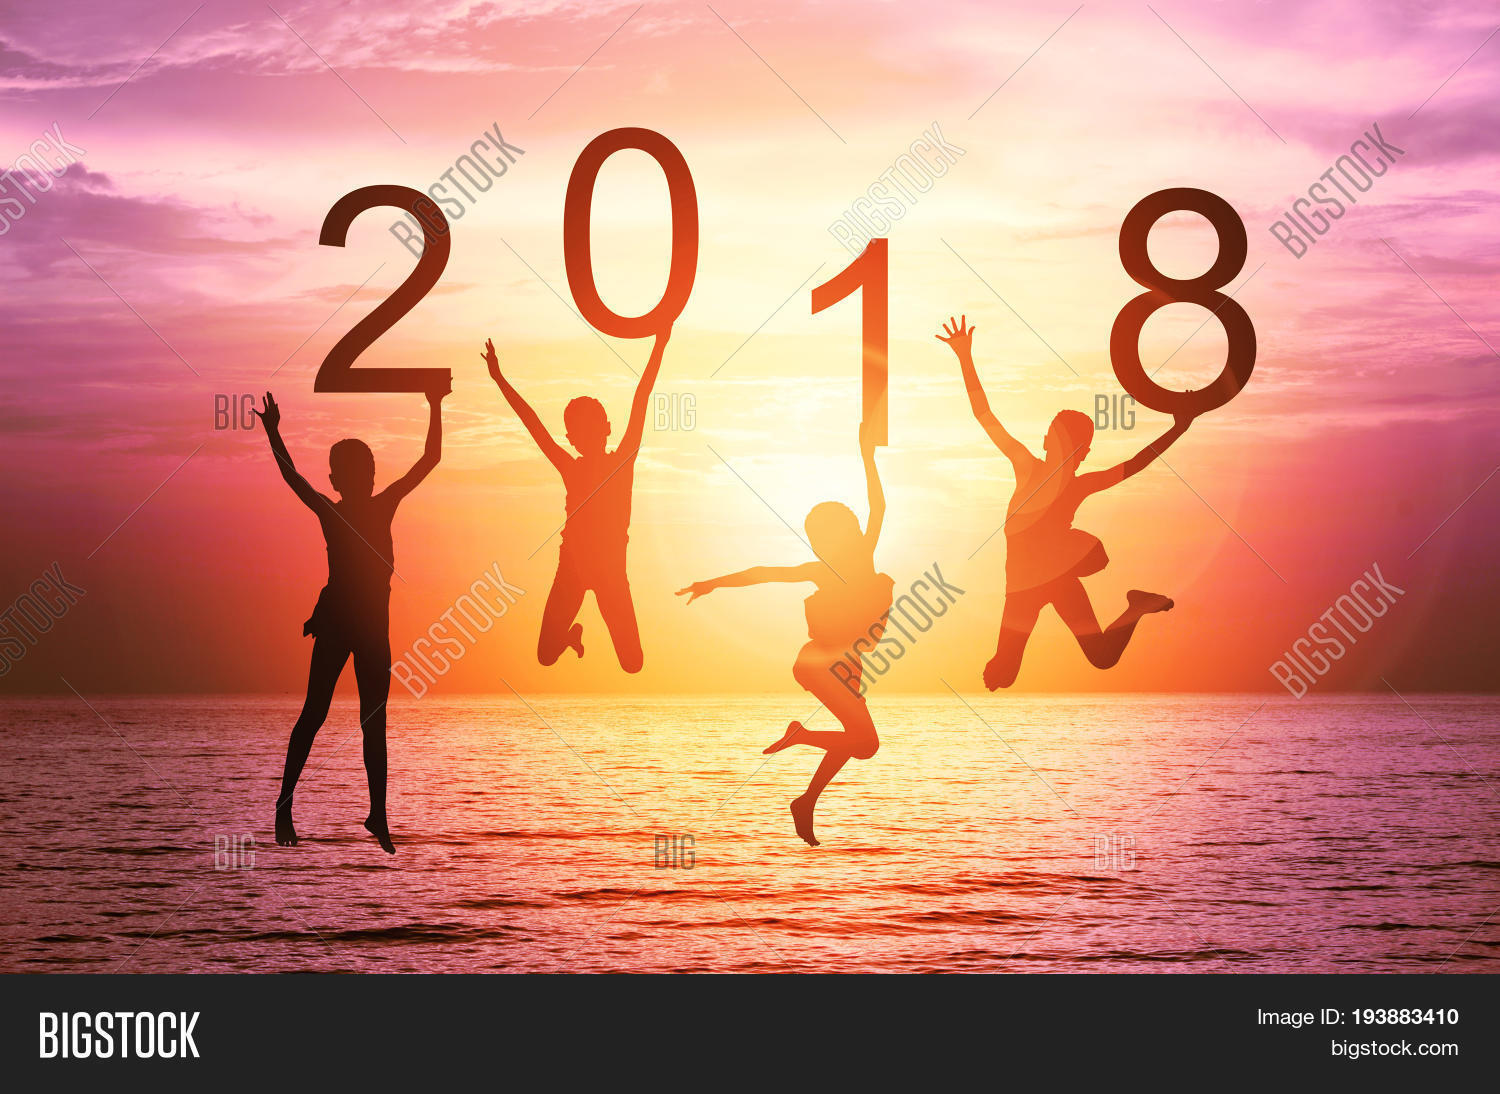 happy new year card 2018 silhouette of children girl is jumping on tropical beach with